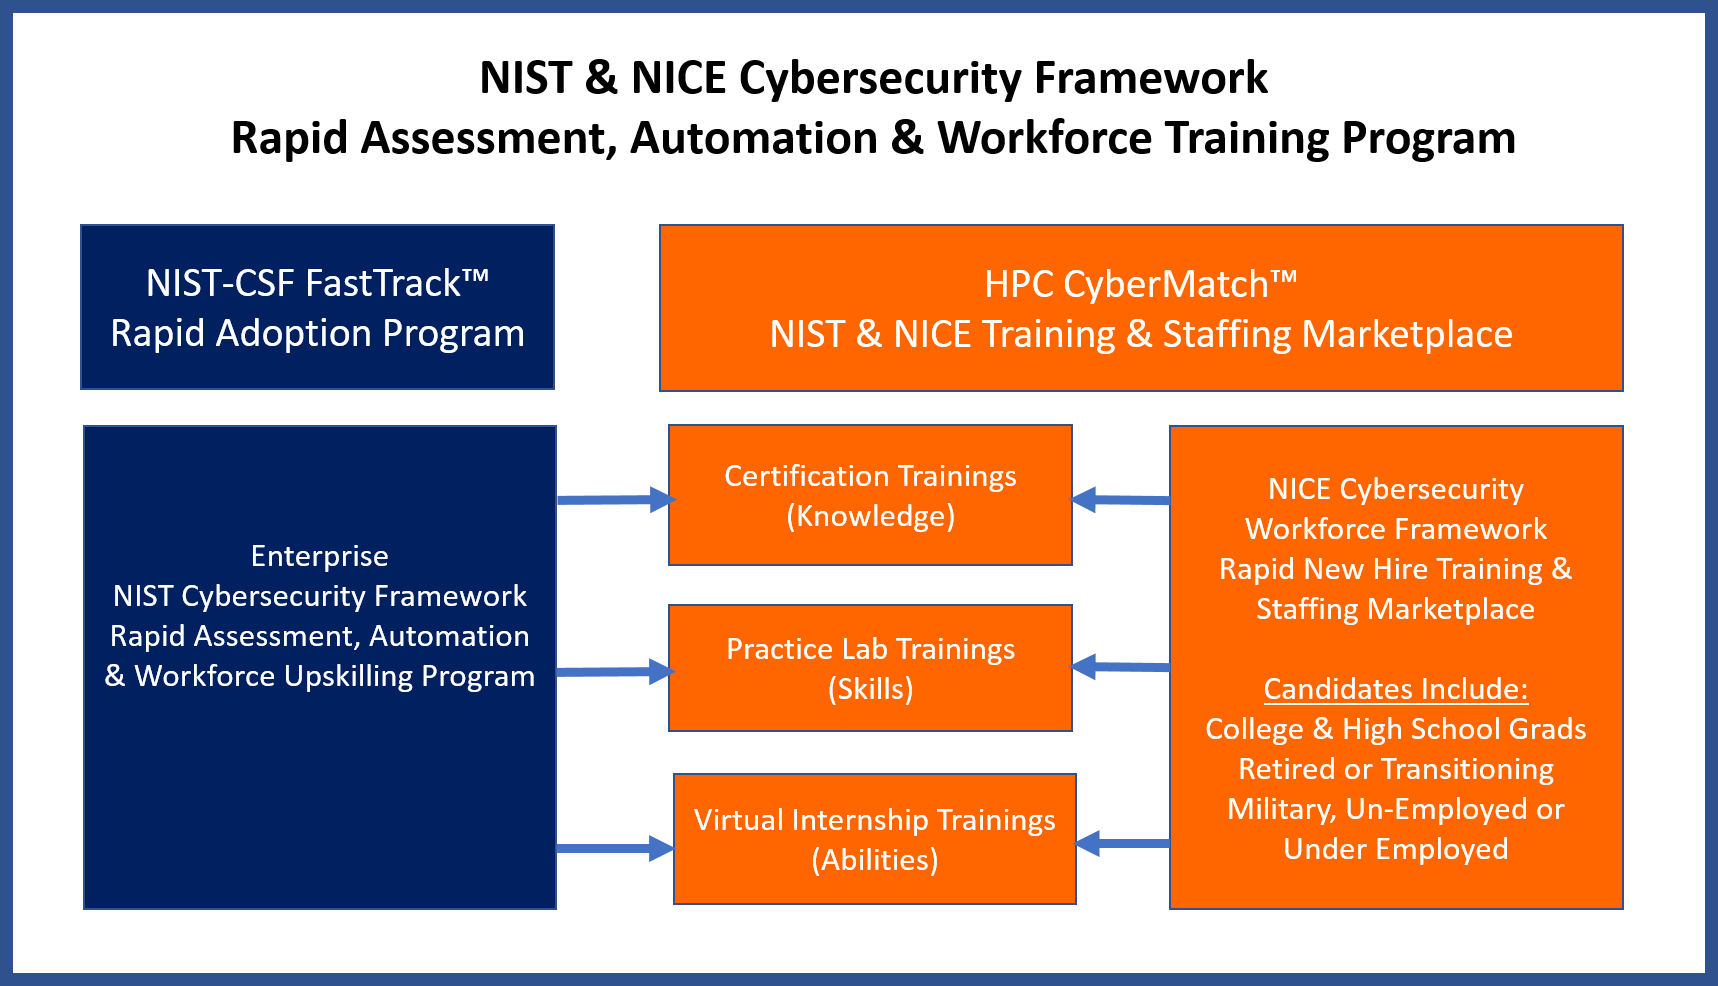 NIST Cybersecurity Framework Mentoring Services